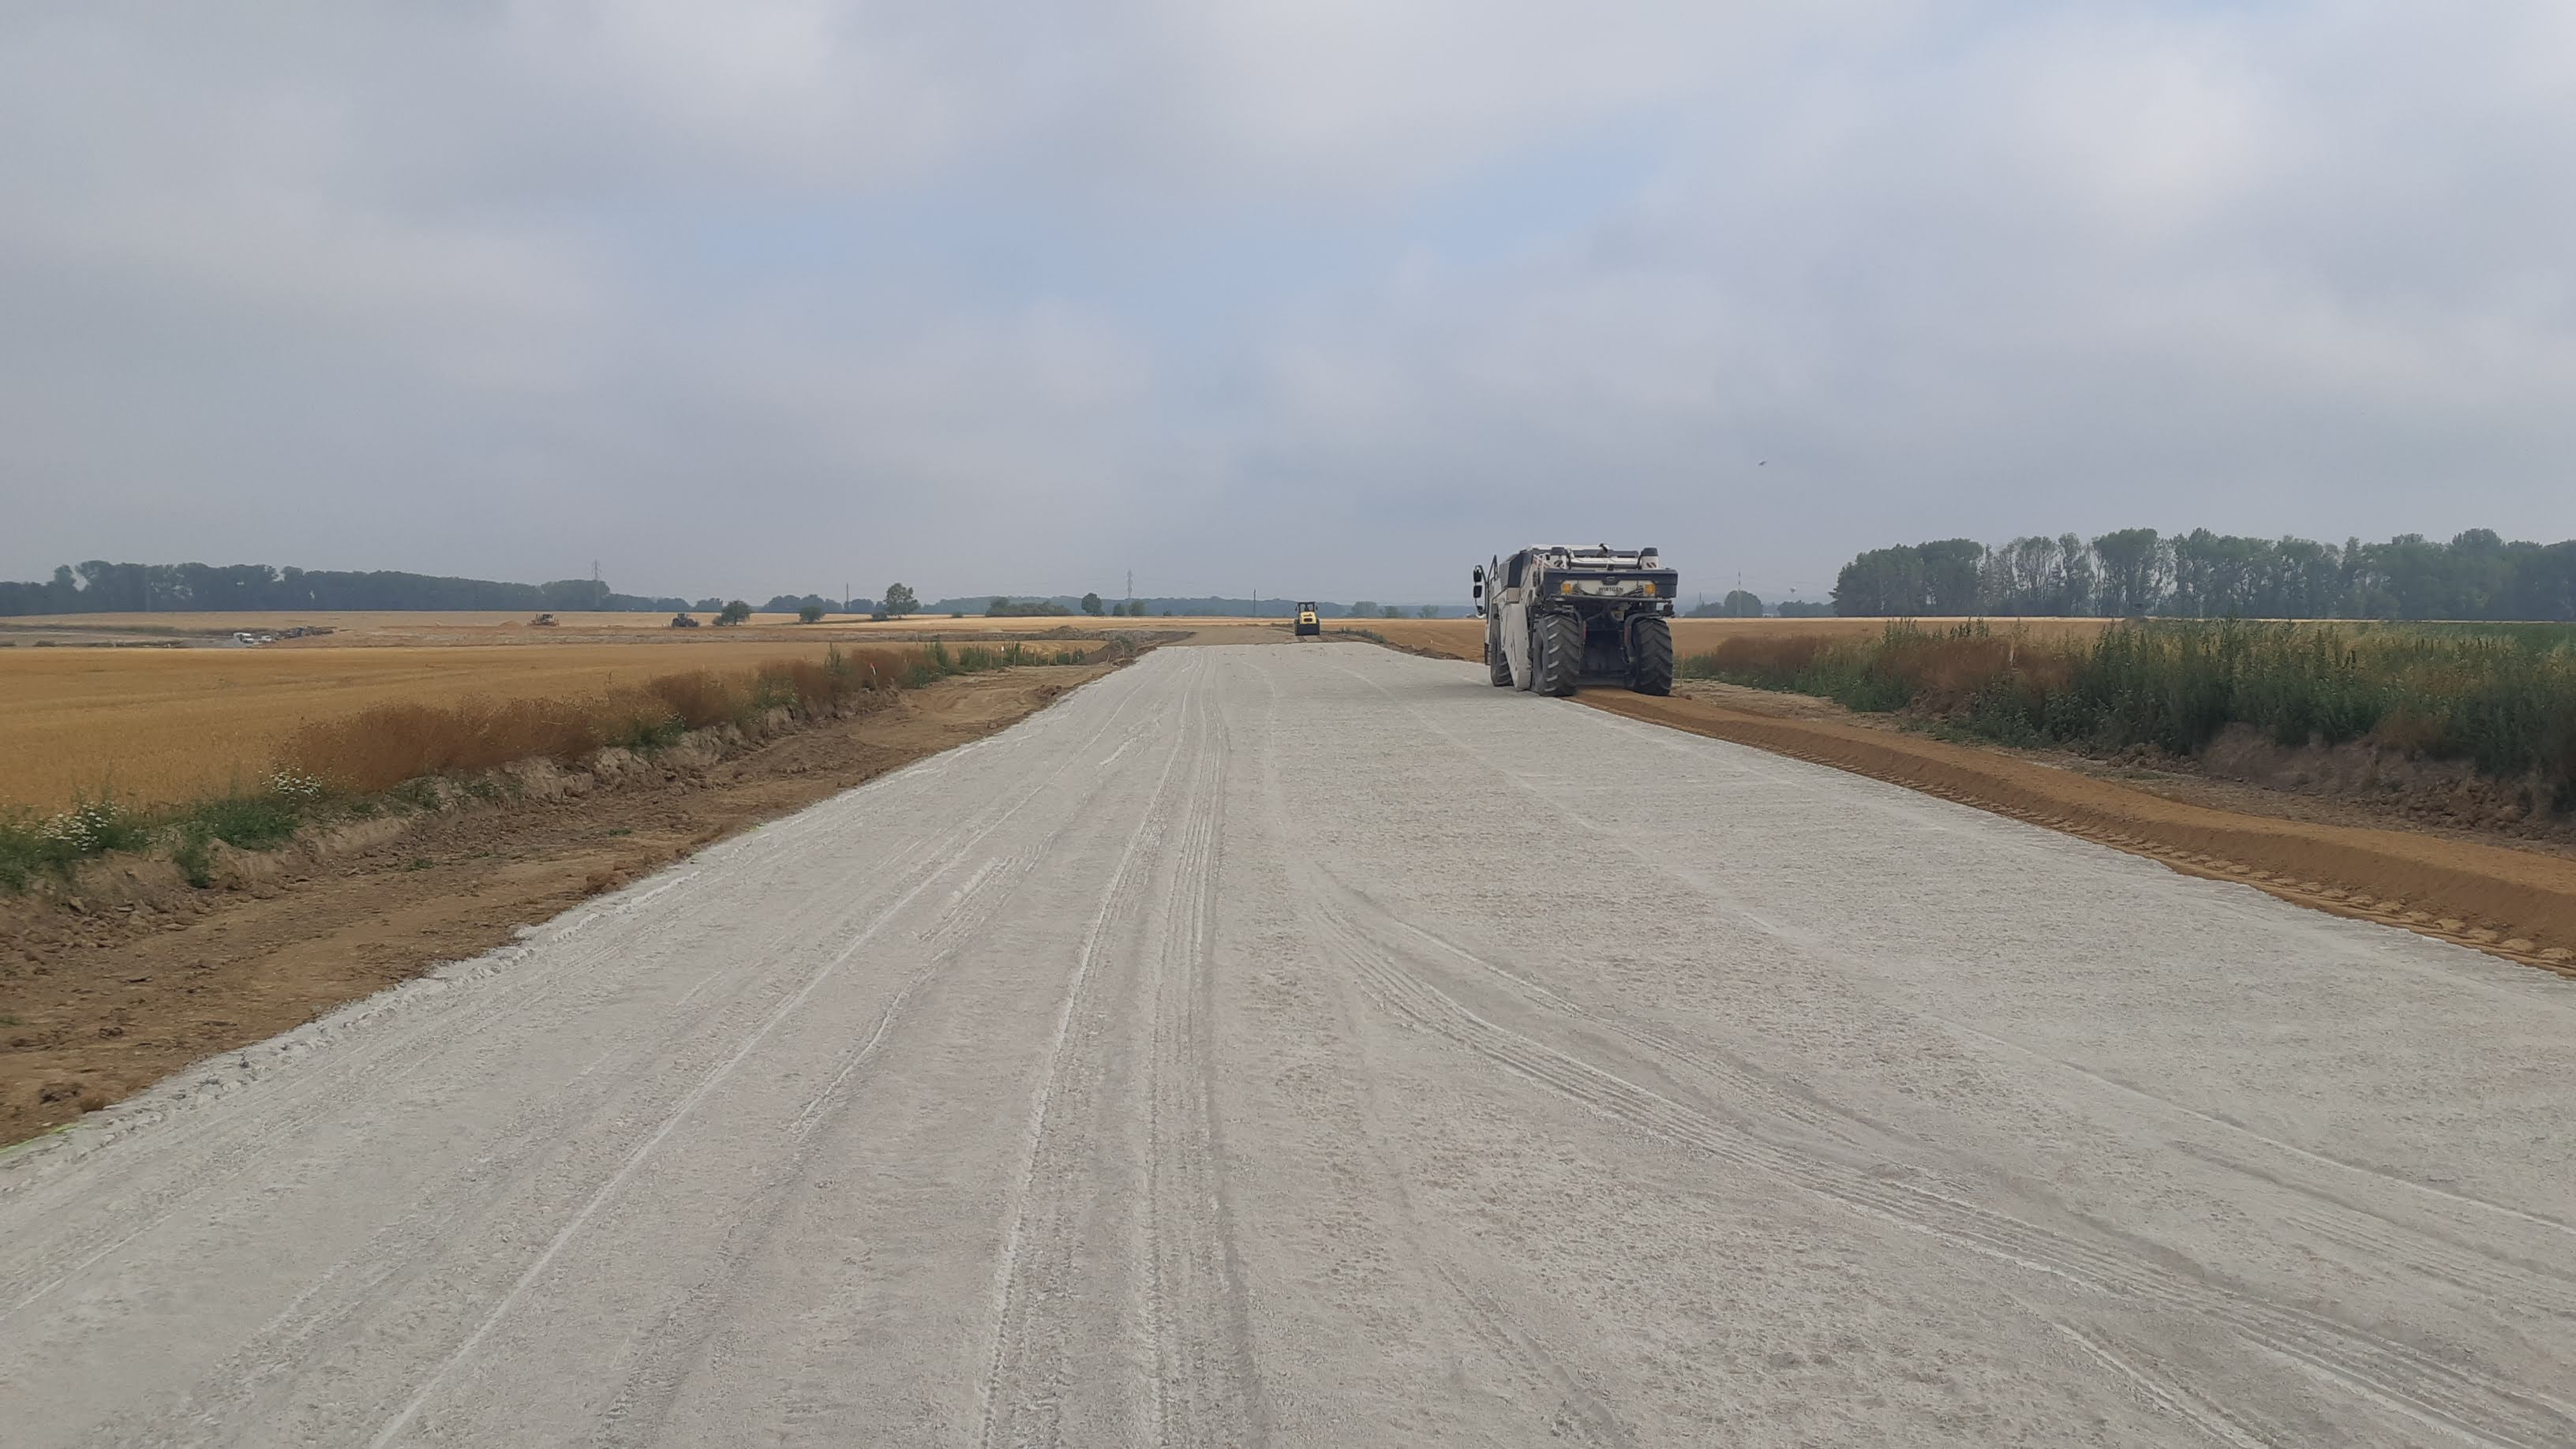 D35 Časy - Ostrov       - Construction de routes et de ponts